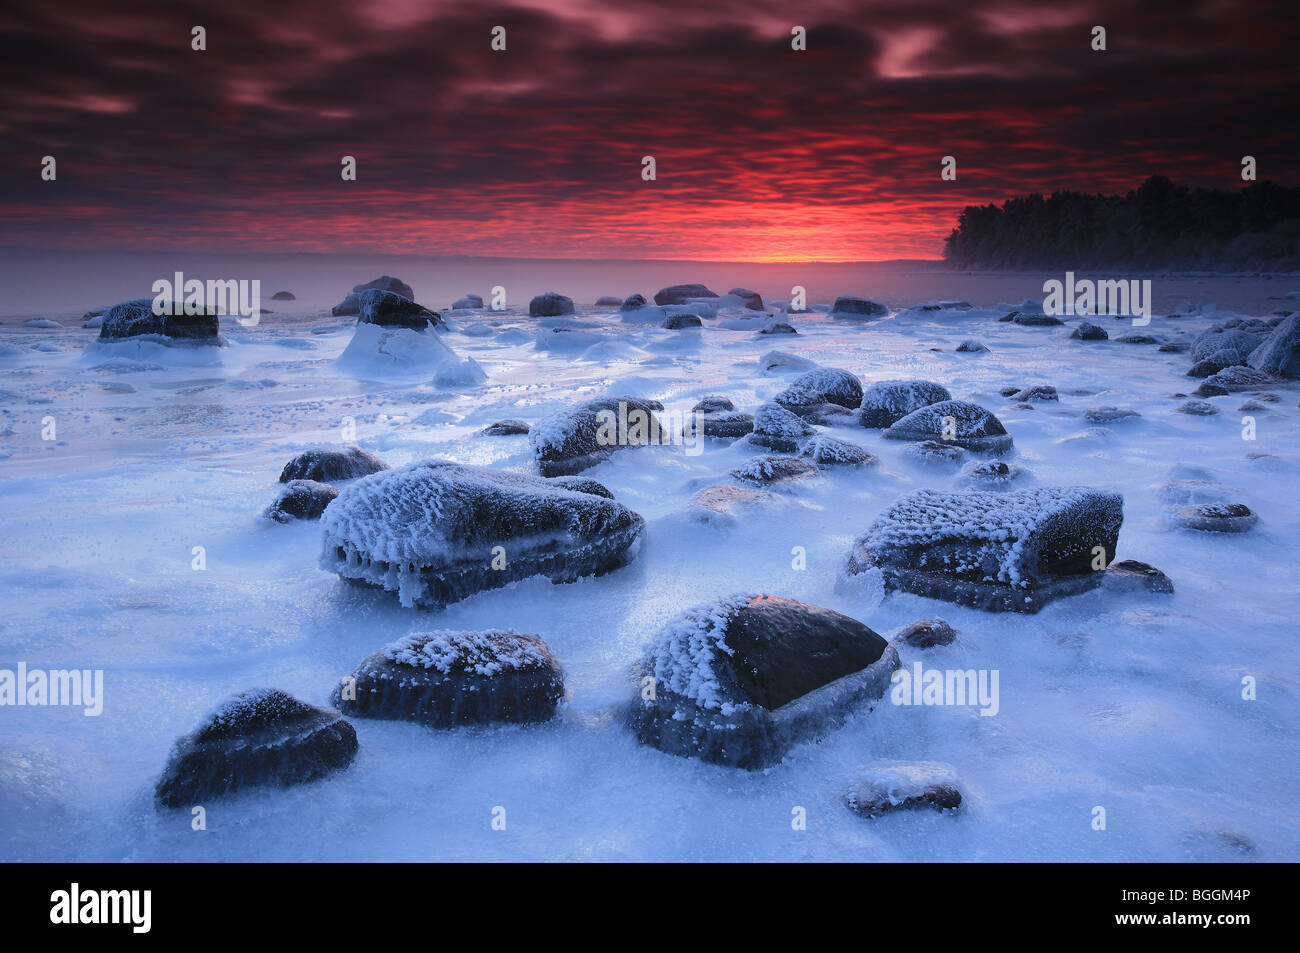 Frozen coastal landscape at dawn, at Larkollen in Rygge, Østfold fylke, Norway. - Stock Image